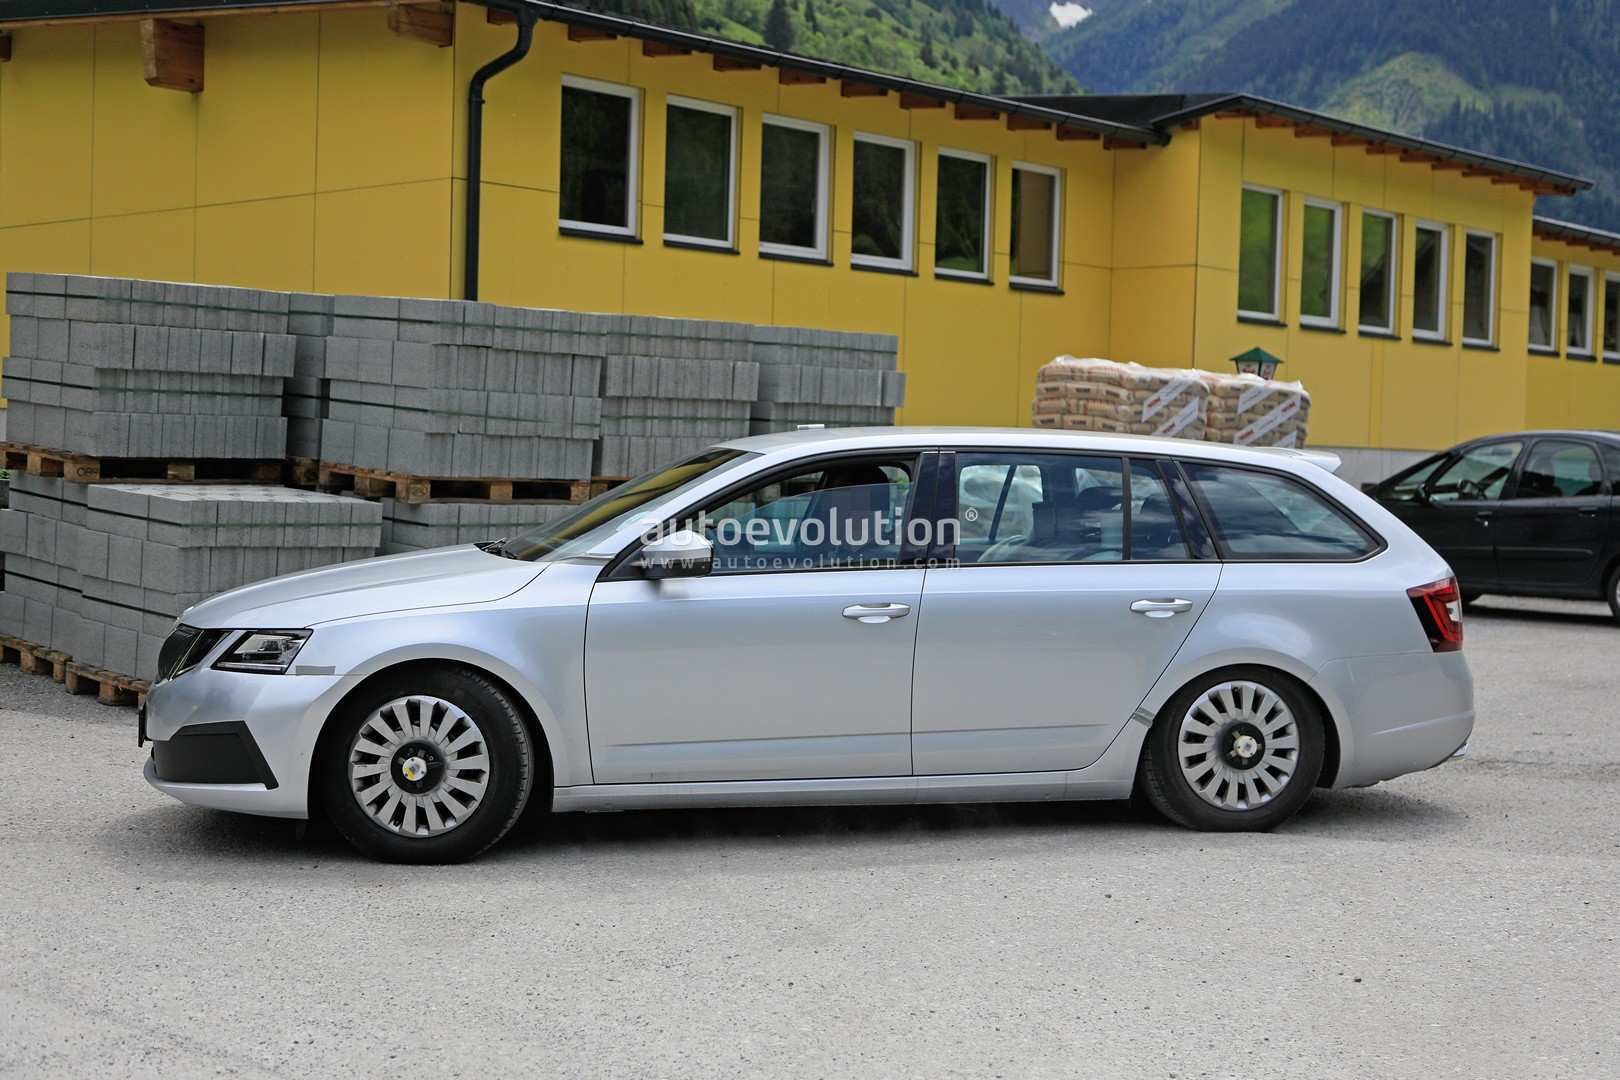 53 Best Review Spy Shots 2020 Skoda Superb Release with Spy Shots 2020 Skoda Superb